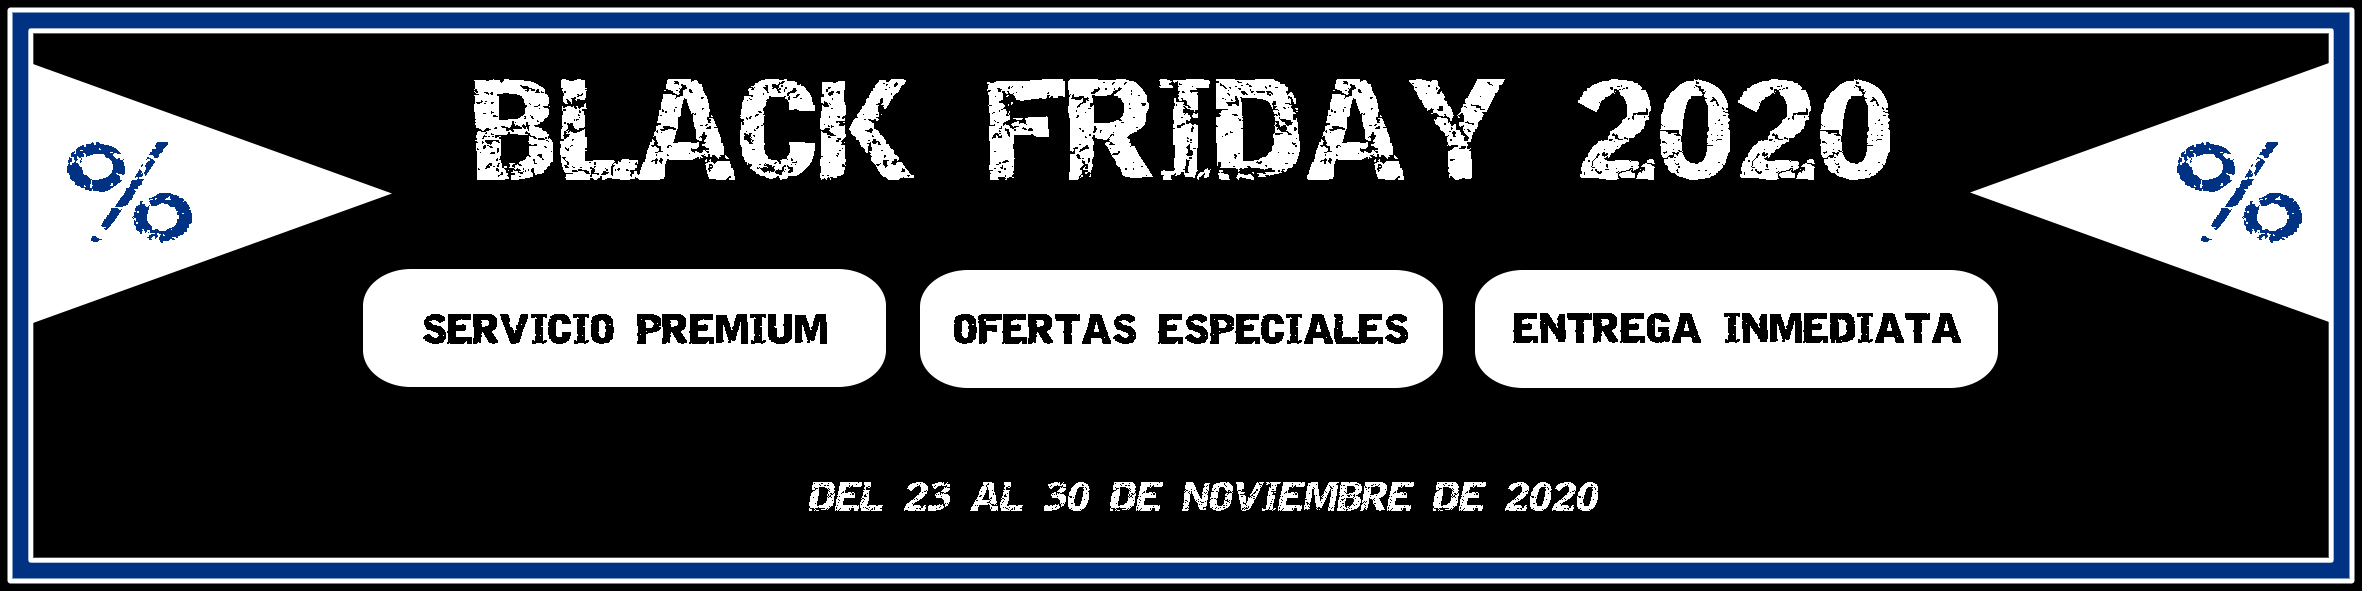 Black Friday 2020 en Electro Premium